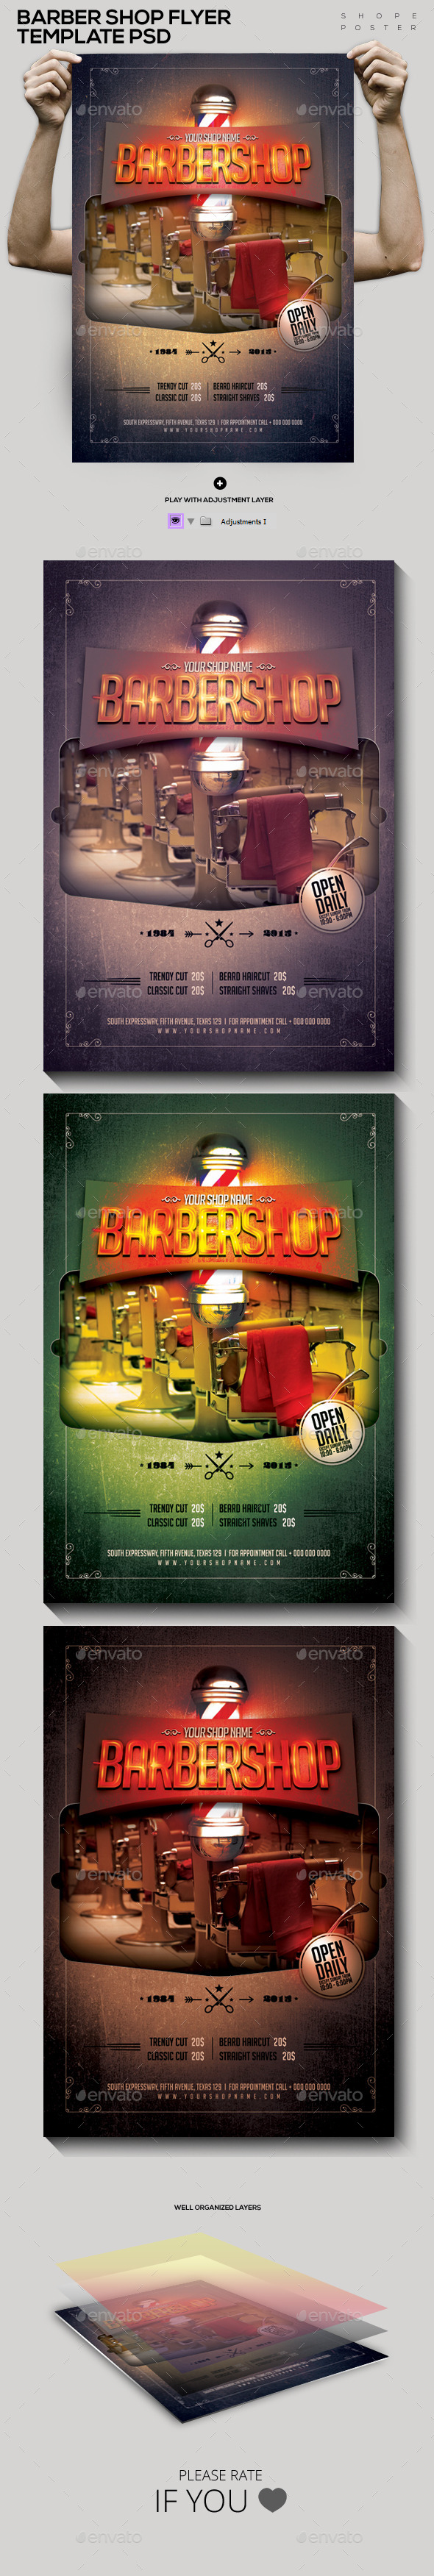 GraphicRiver Barber Shop Template PSD Flyer Poster 10561365